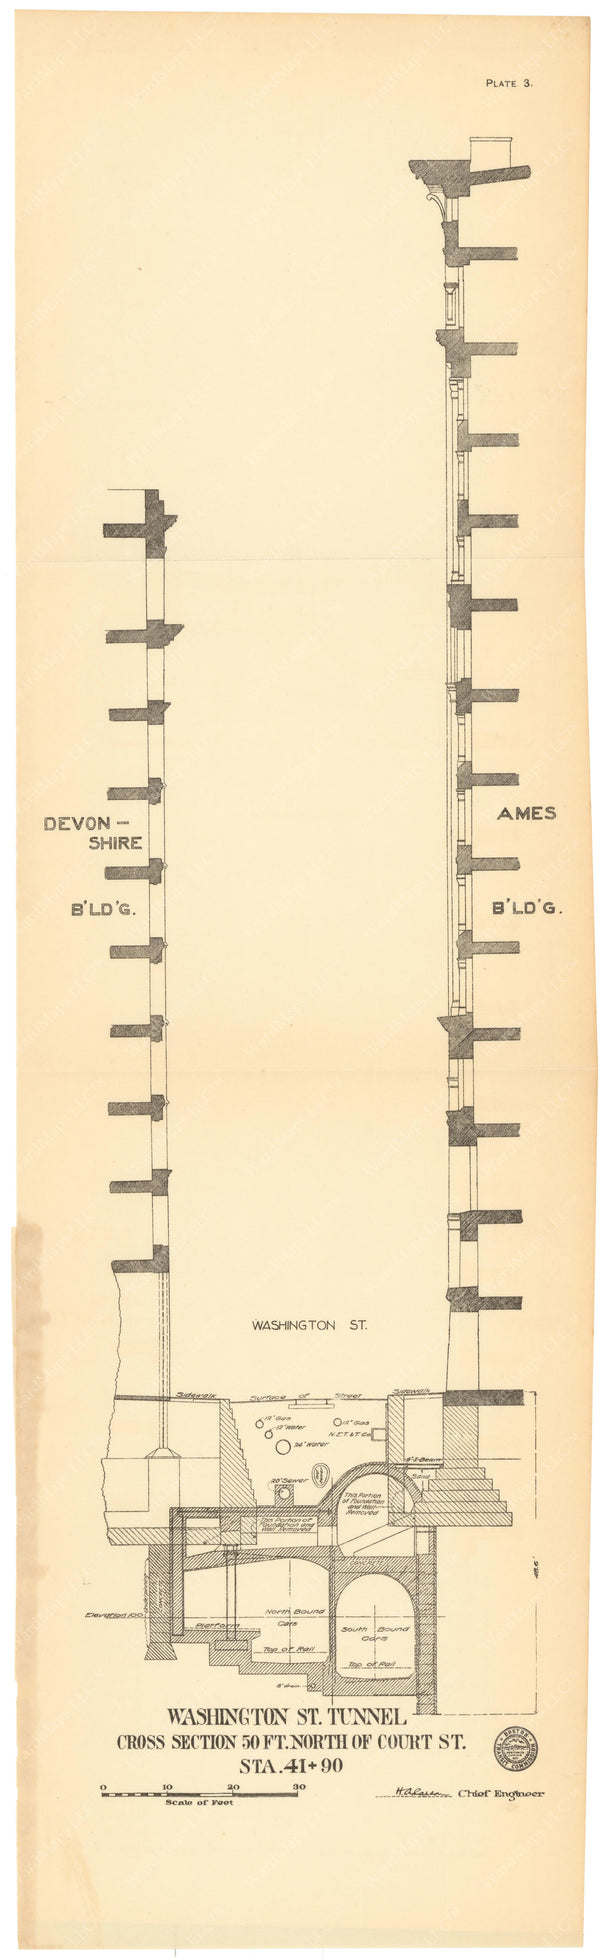 BTC Annual Report 12, 1906 Plate 03: Tunnel Cross Section at Ames Building